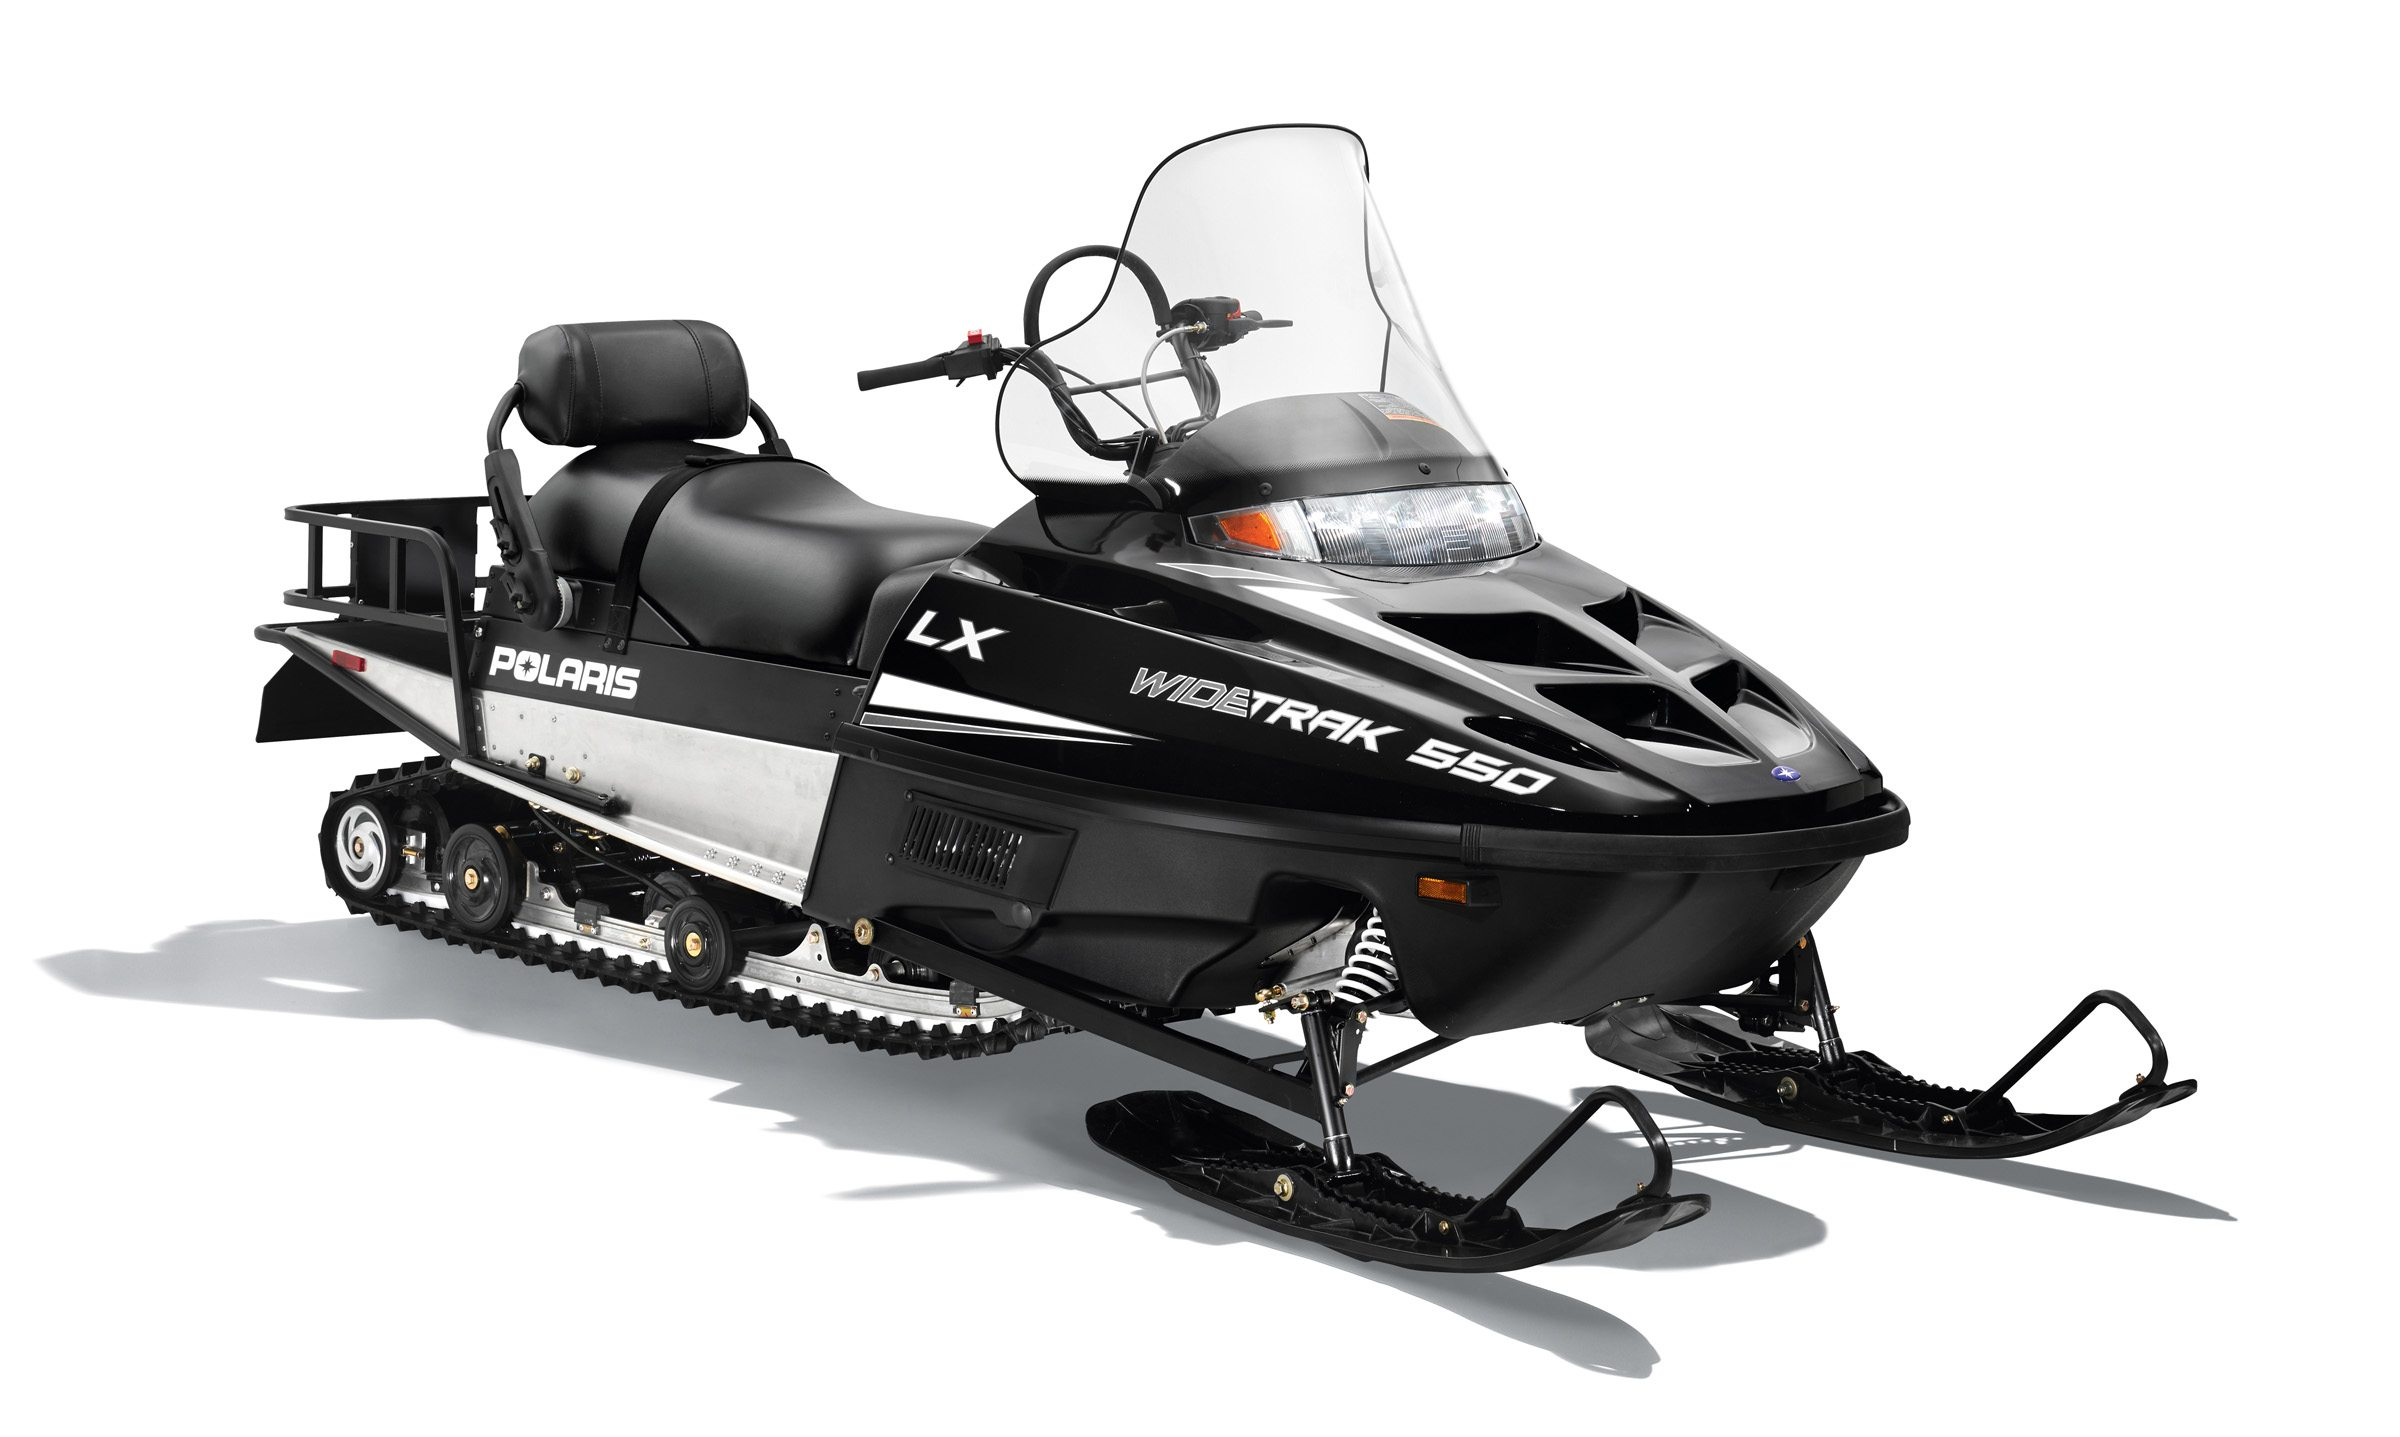 2016 Polaris 550 Widetrak LX ES in Algona, Iowa - Photo 1